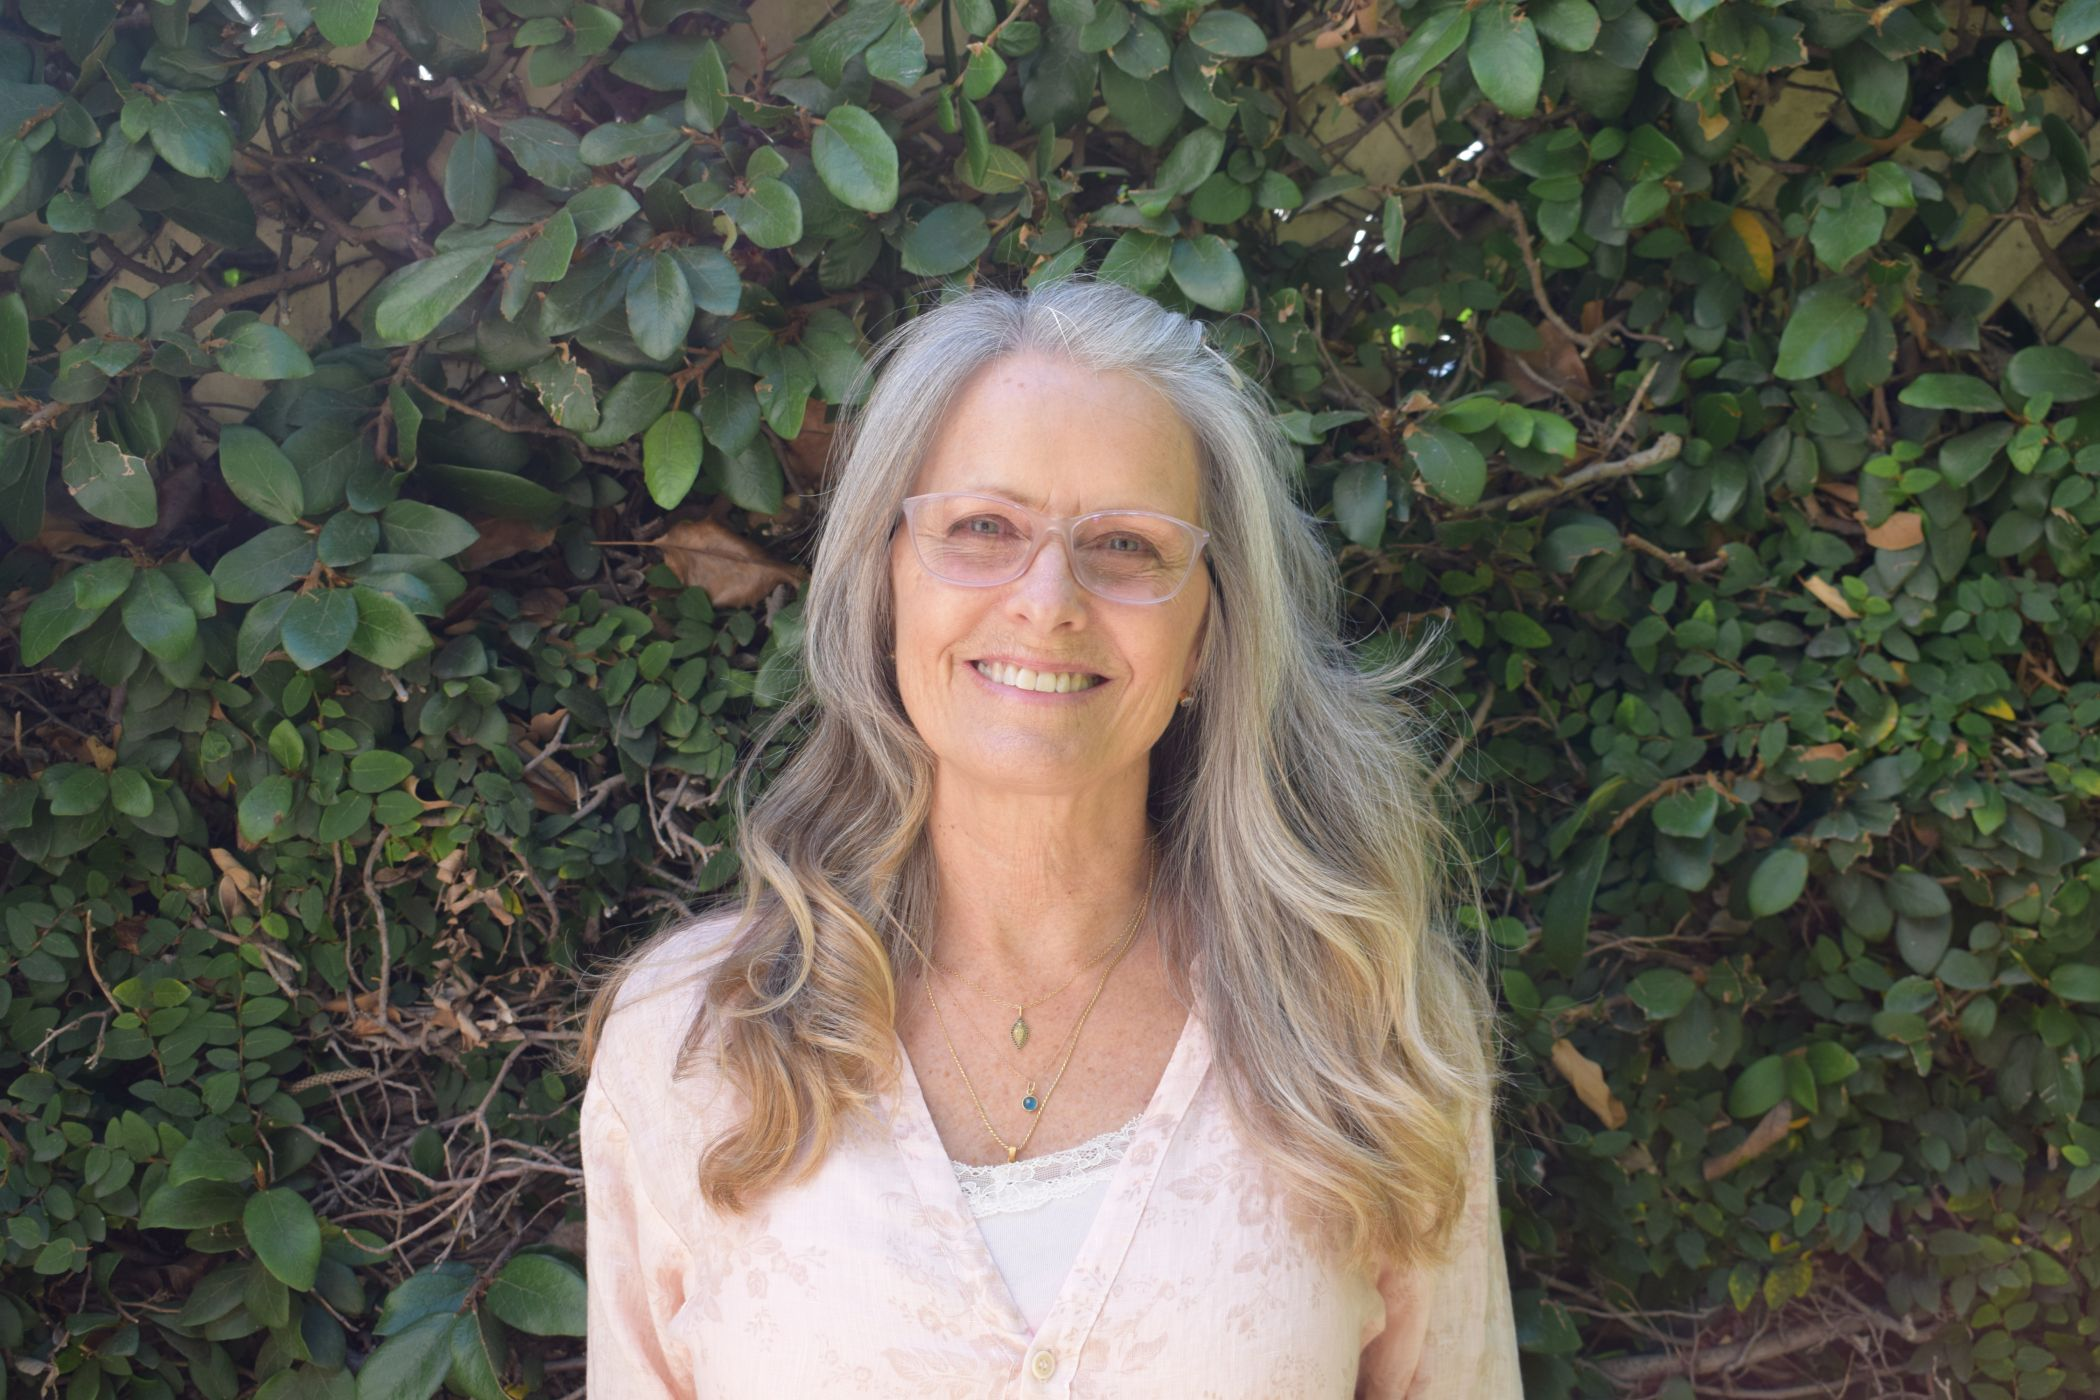 Tina shares her experiences volunteering with Sojourn for over 17 years!